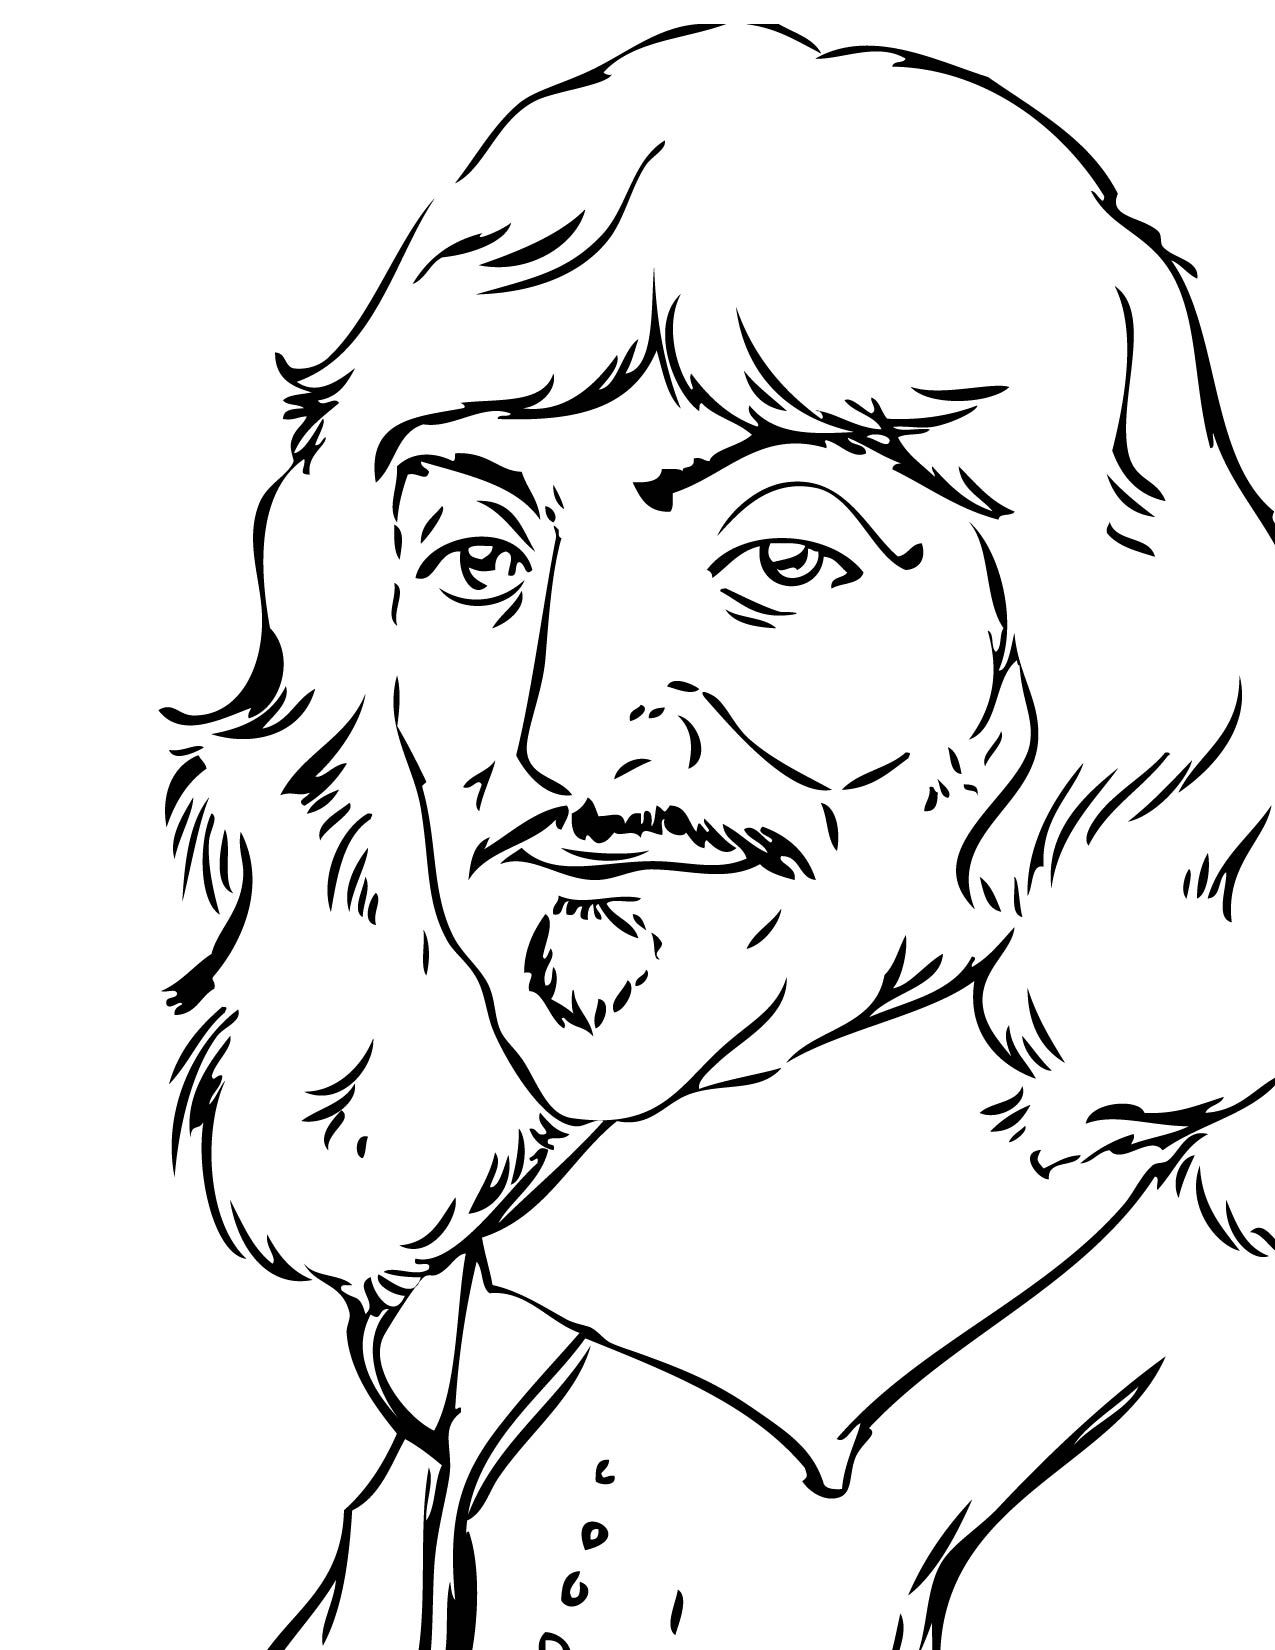 descartes mystery of history 3 pinterest coloring books